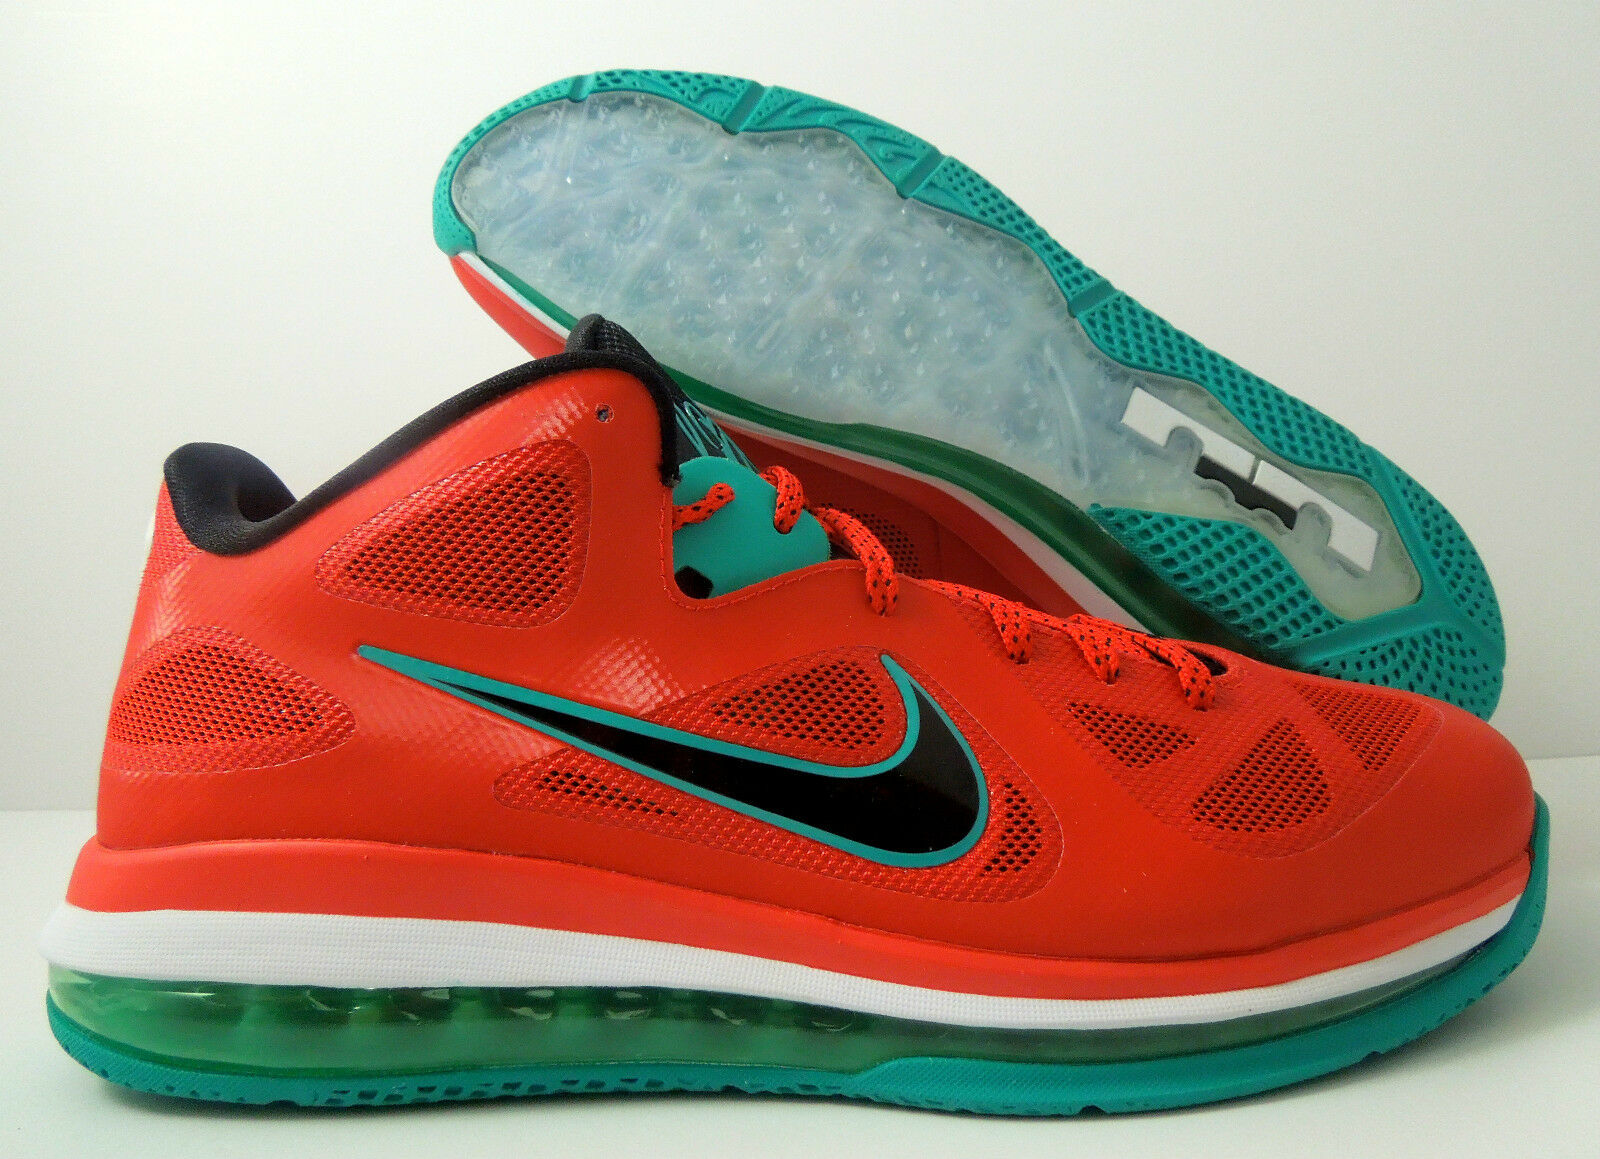 NIKE LEBRON 9 LOW LIVERPOOL CHRISTMAS ACTION RED-GREEN SZ 10 [510811-601]